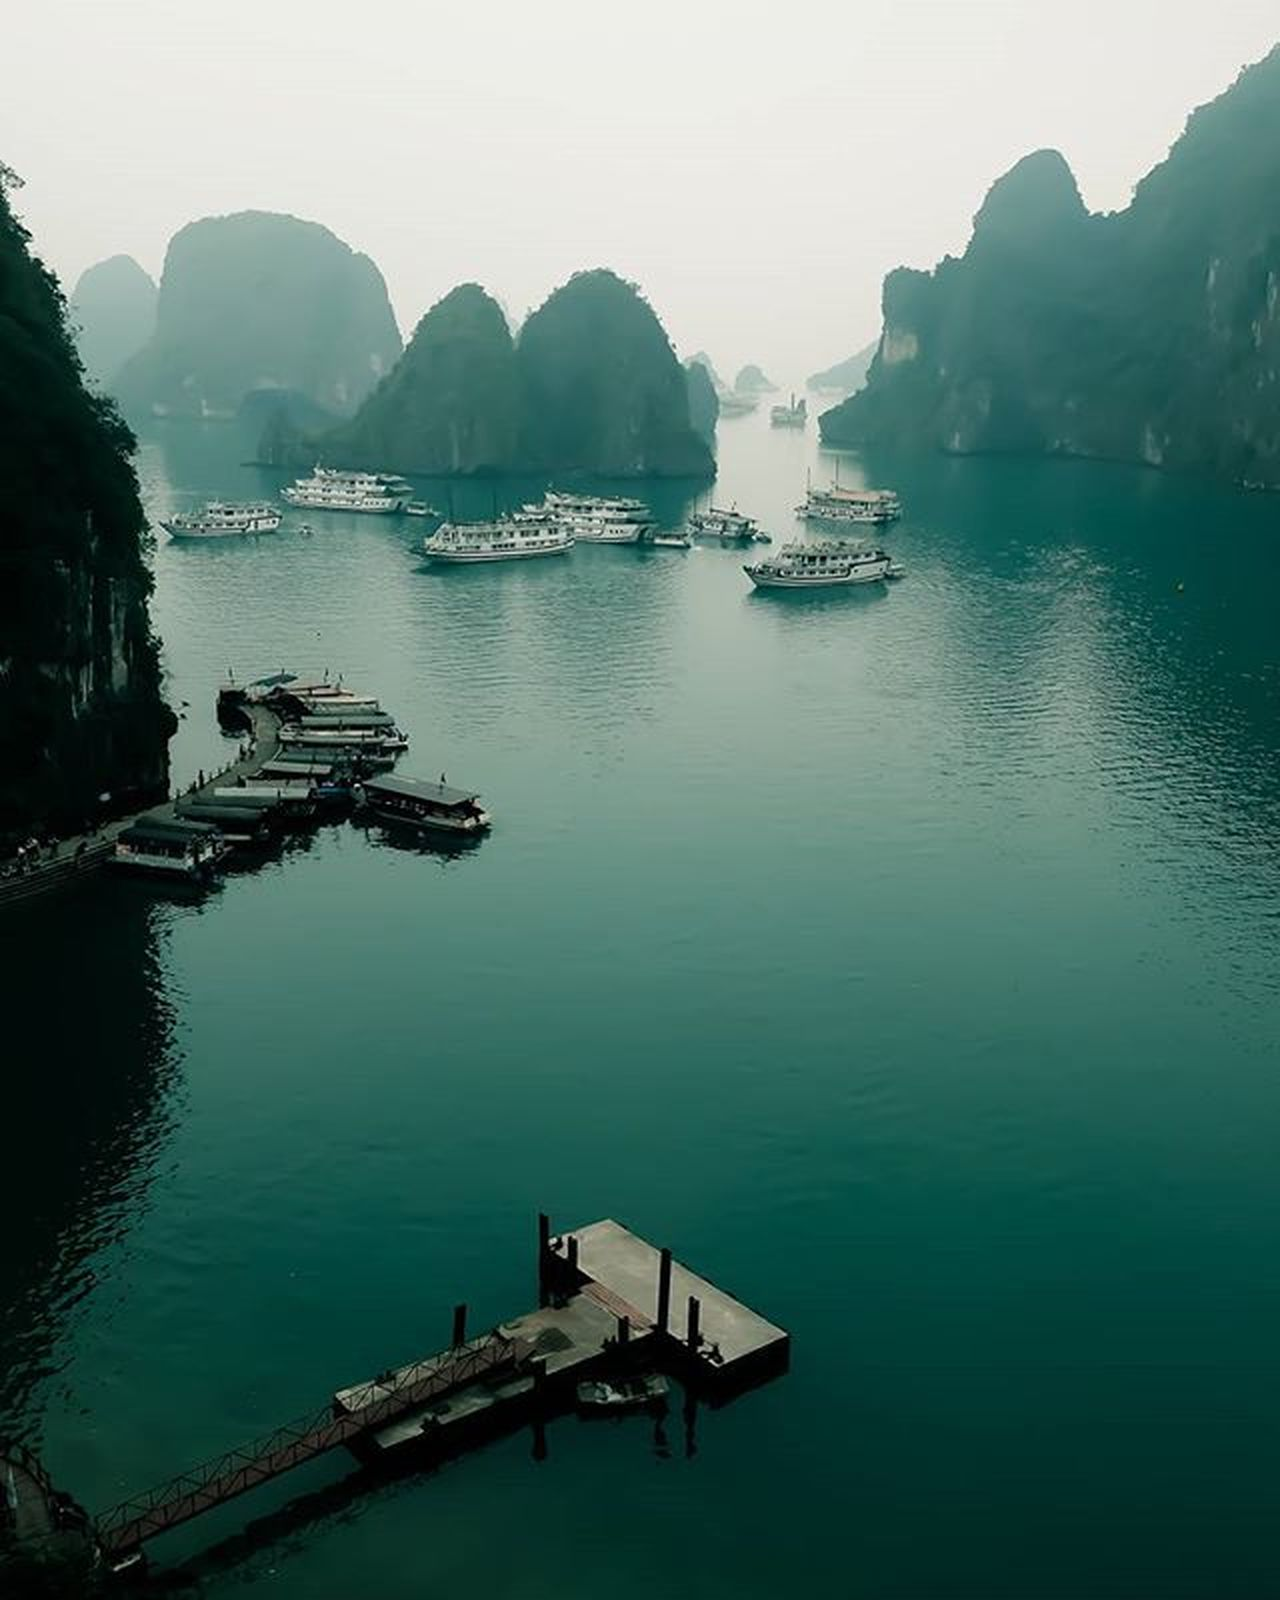 "March 11th 2016 7 Wonders of the World ( Nature ) Hạ Long Bay (Vietnamese: Vịnh Hạ Long : ""descending dragon bay"") is a UNESCO World Heritage Site, and a popular travel destination, in Quảng Ninh Province, North Vietnam. The bay features thousands of limestone karsts and isles in various sizes and shapes with a 120 kilometre long coastline and is approximately 1,553 square kilometres in size with 1969 islets. Several of the islands are hollow, with enormous caves, other support floating villages of fishermen, who ply the shallow waters for 200 species of fish and 450 different kinds of mollusks. Another specific feature of Halong Bay is the abundance of lakes inside the limestone islands, for example, Dau Be island has six enclosed lakes. All these island lakes occupy drowned dolines within fengcong karst. Nature Vietnam Halong Bay ASIA Onassignment Destination Travel Travelphotography Indochina Fuji Fujifilm Xt1 Fujixseries Landscape Ig_malaysia_ Landscapes With WhiteWall 7 Wonders Of The World Things I Like"